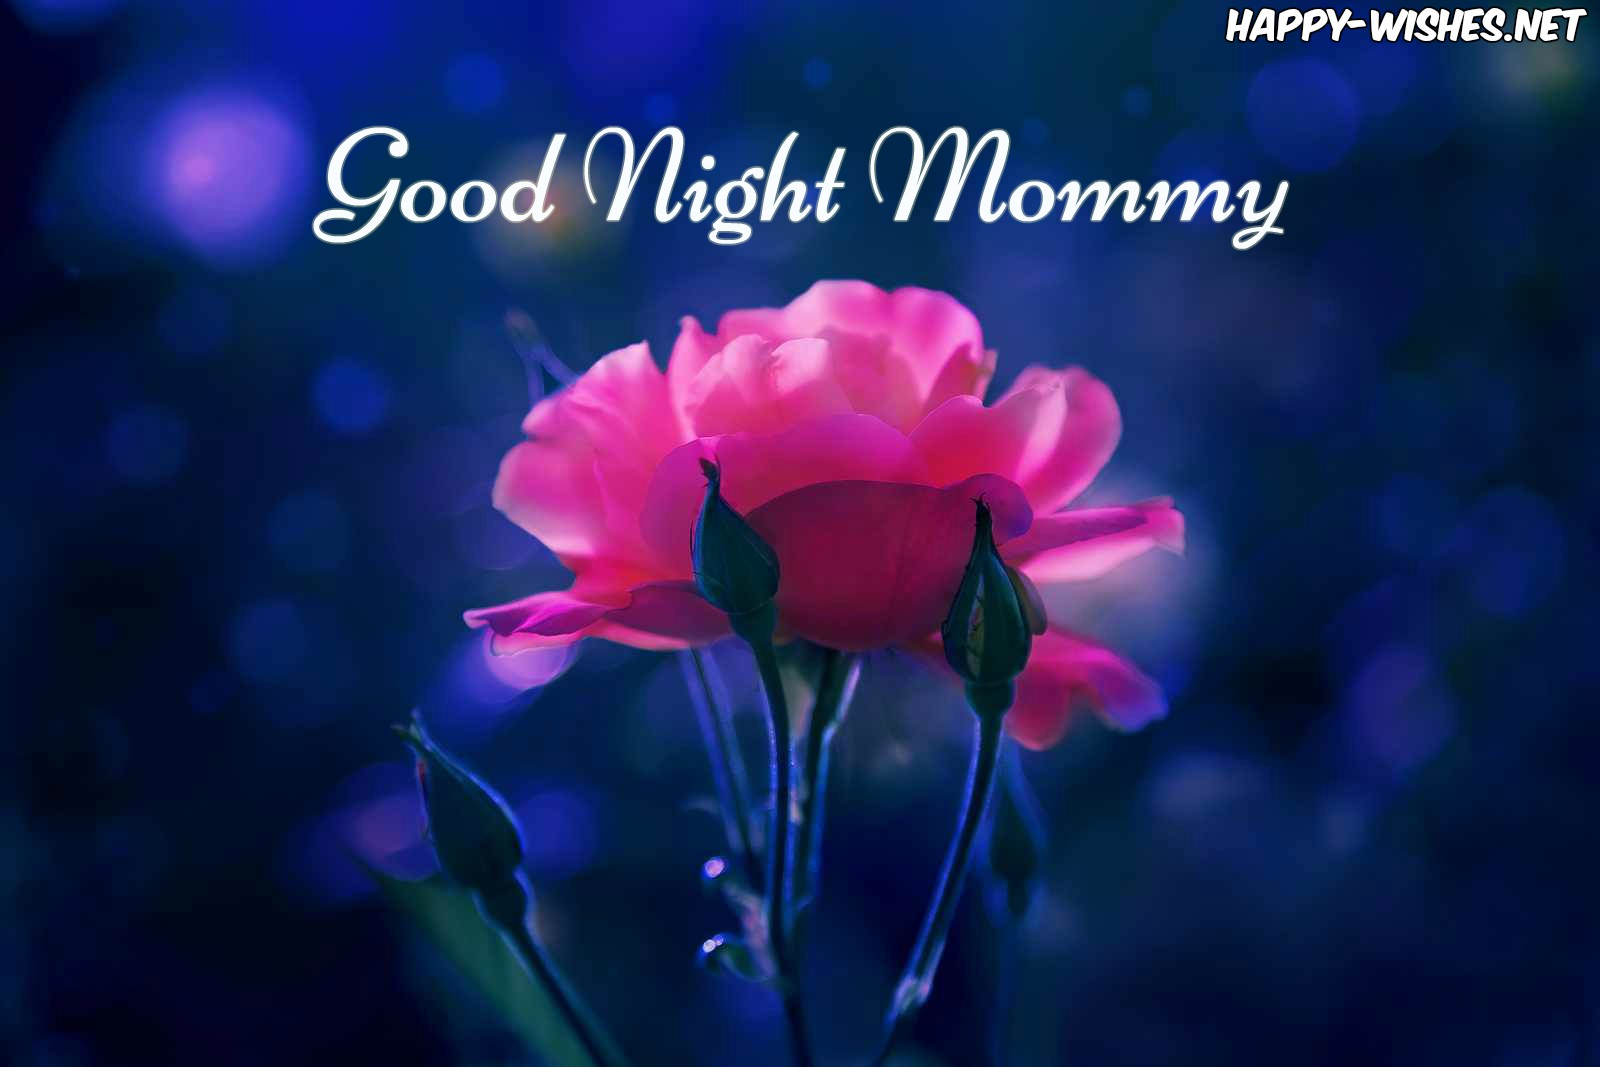 Good night mom wishes images